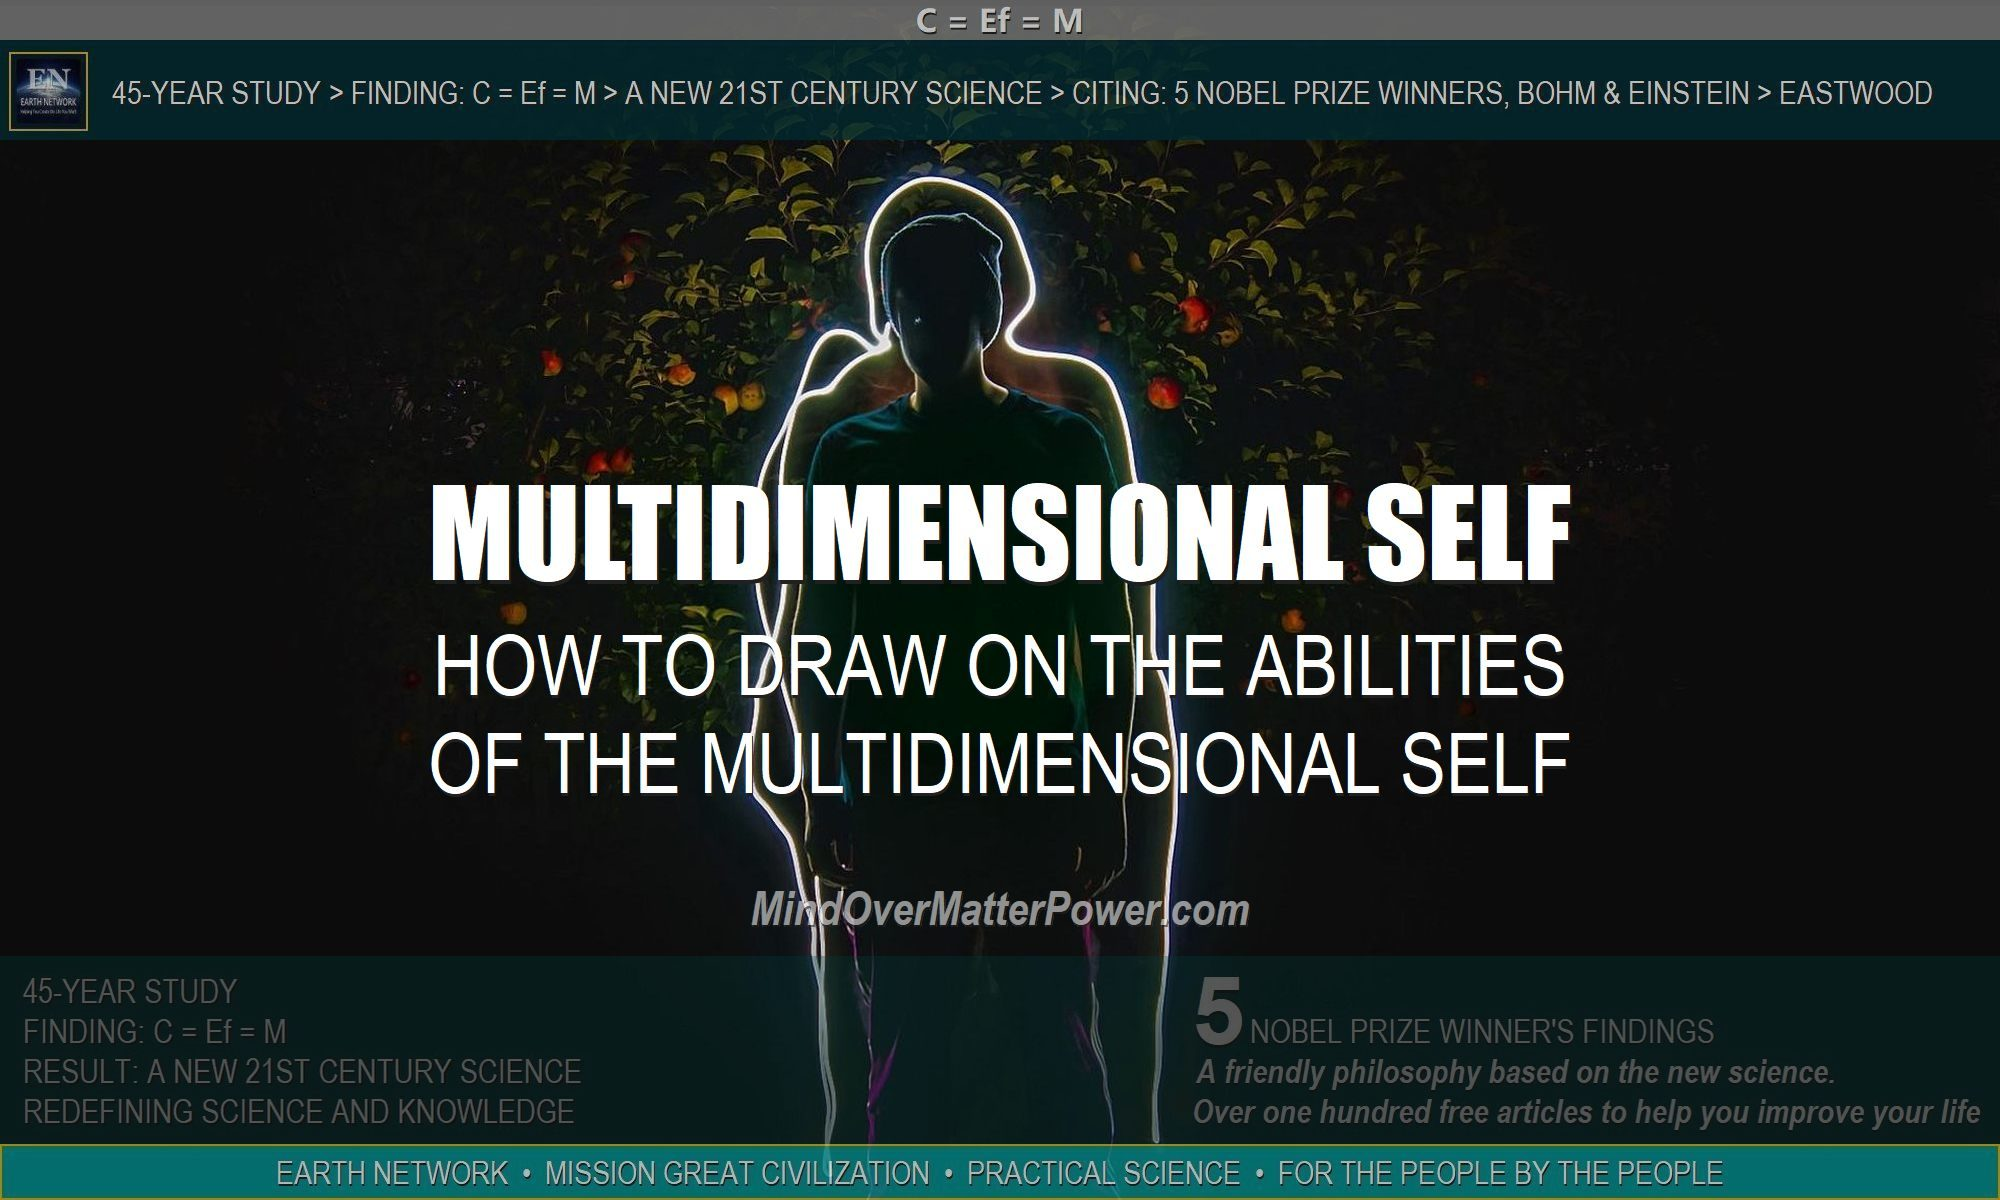 Multiple variations of man depicts multidimensional human nature. You can draw of the power and ability of the multidimensional self, soul, inner self and entity.